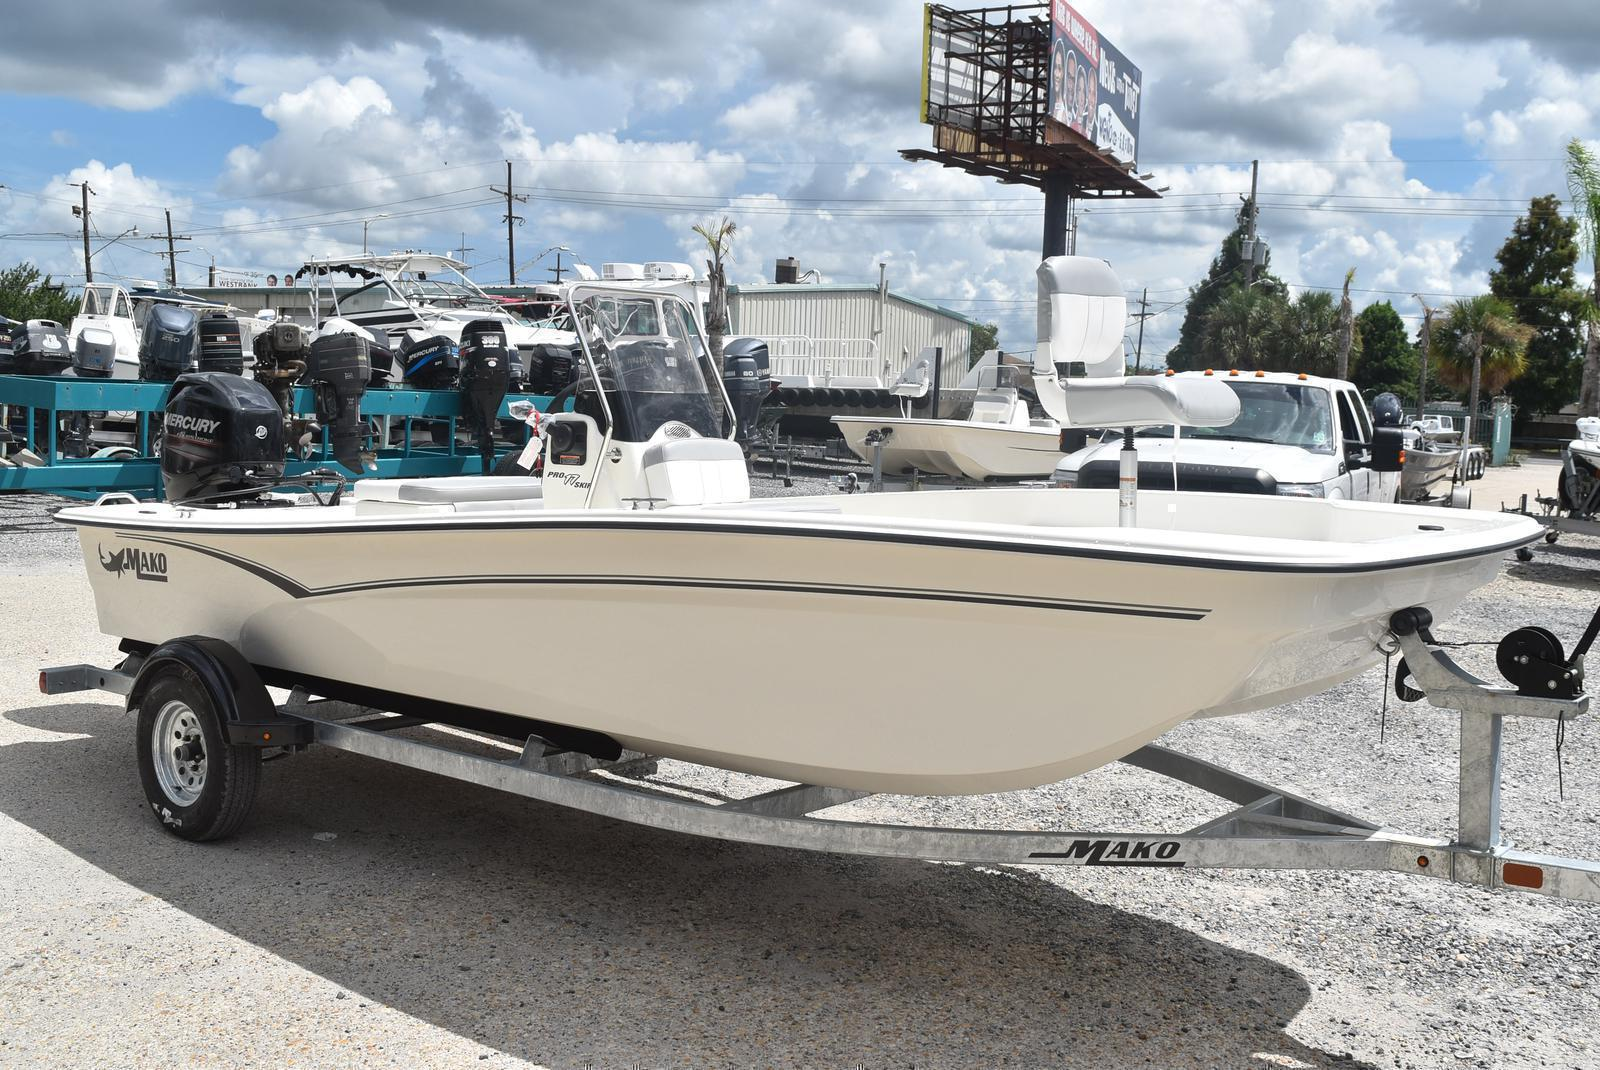 2020 Mako boat for sale, model of the boat is Pro Skiff 17, 75 ELPT & Image # 648 of 702